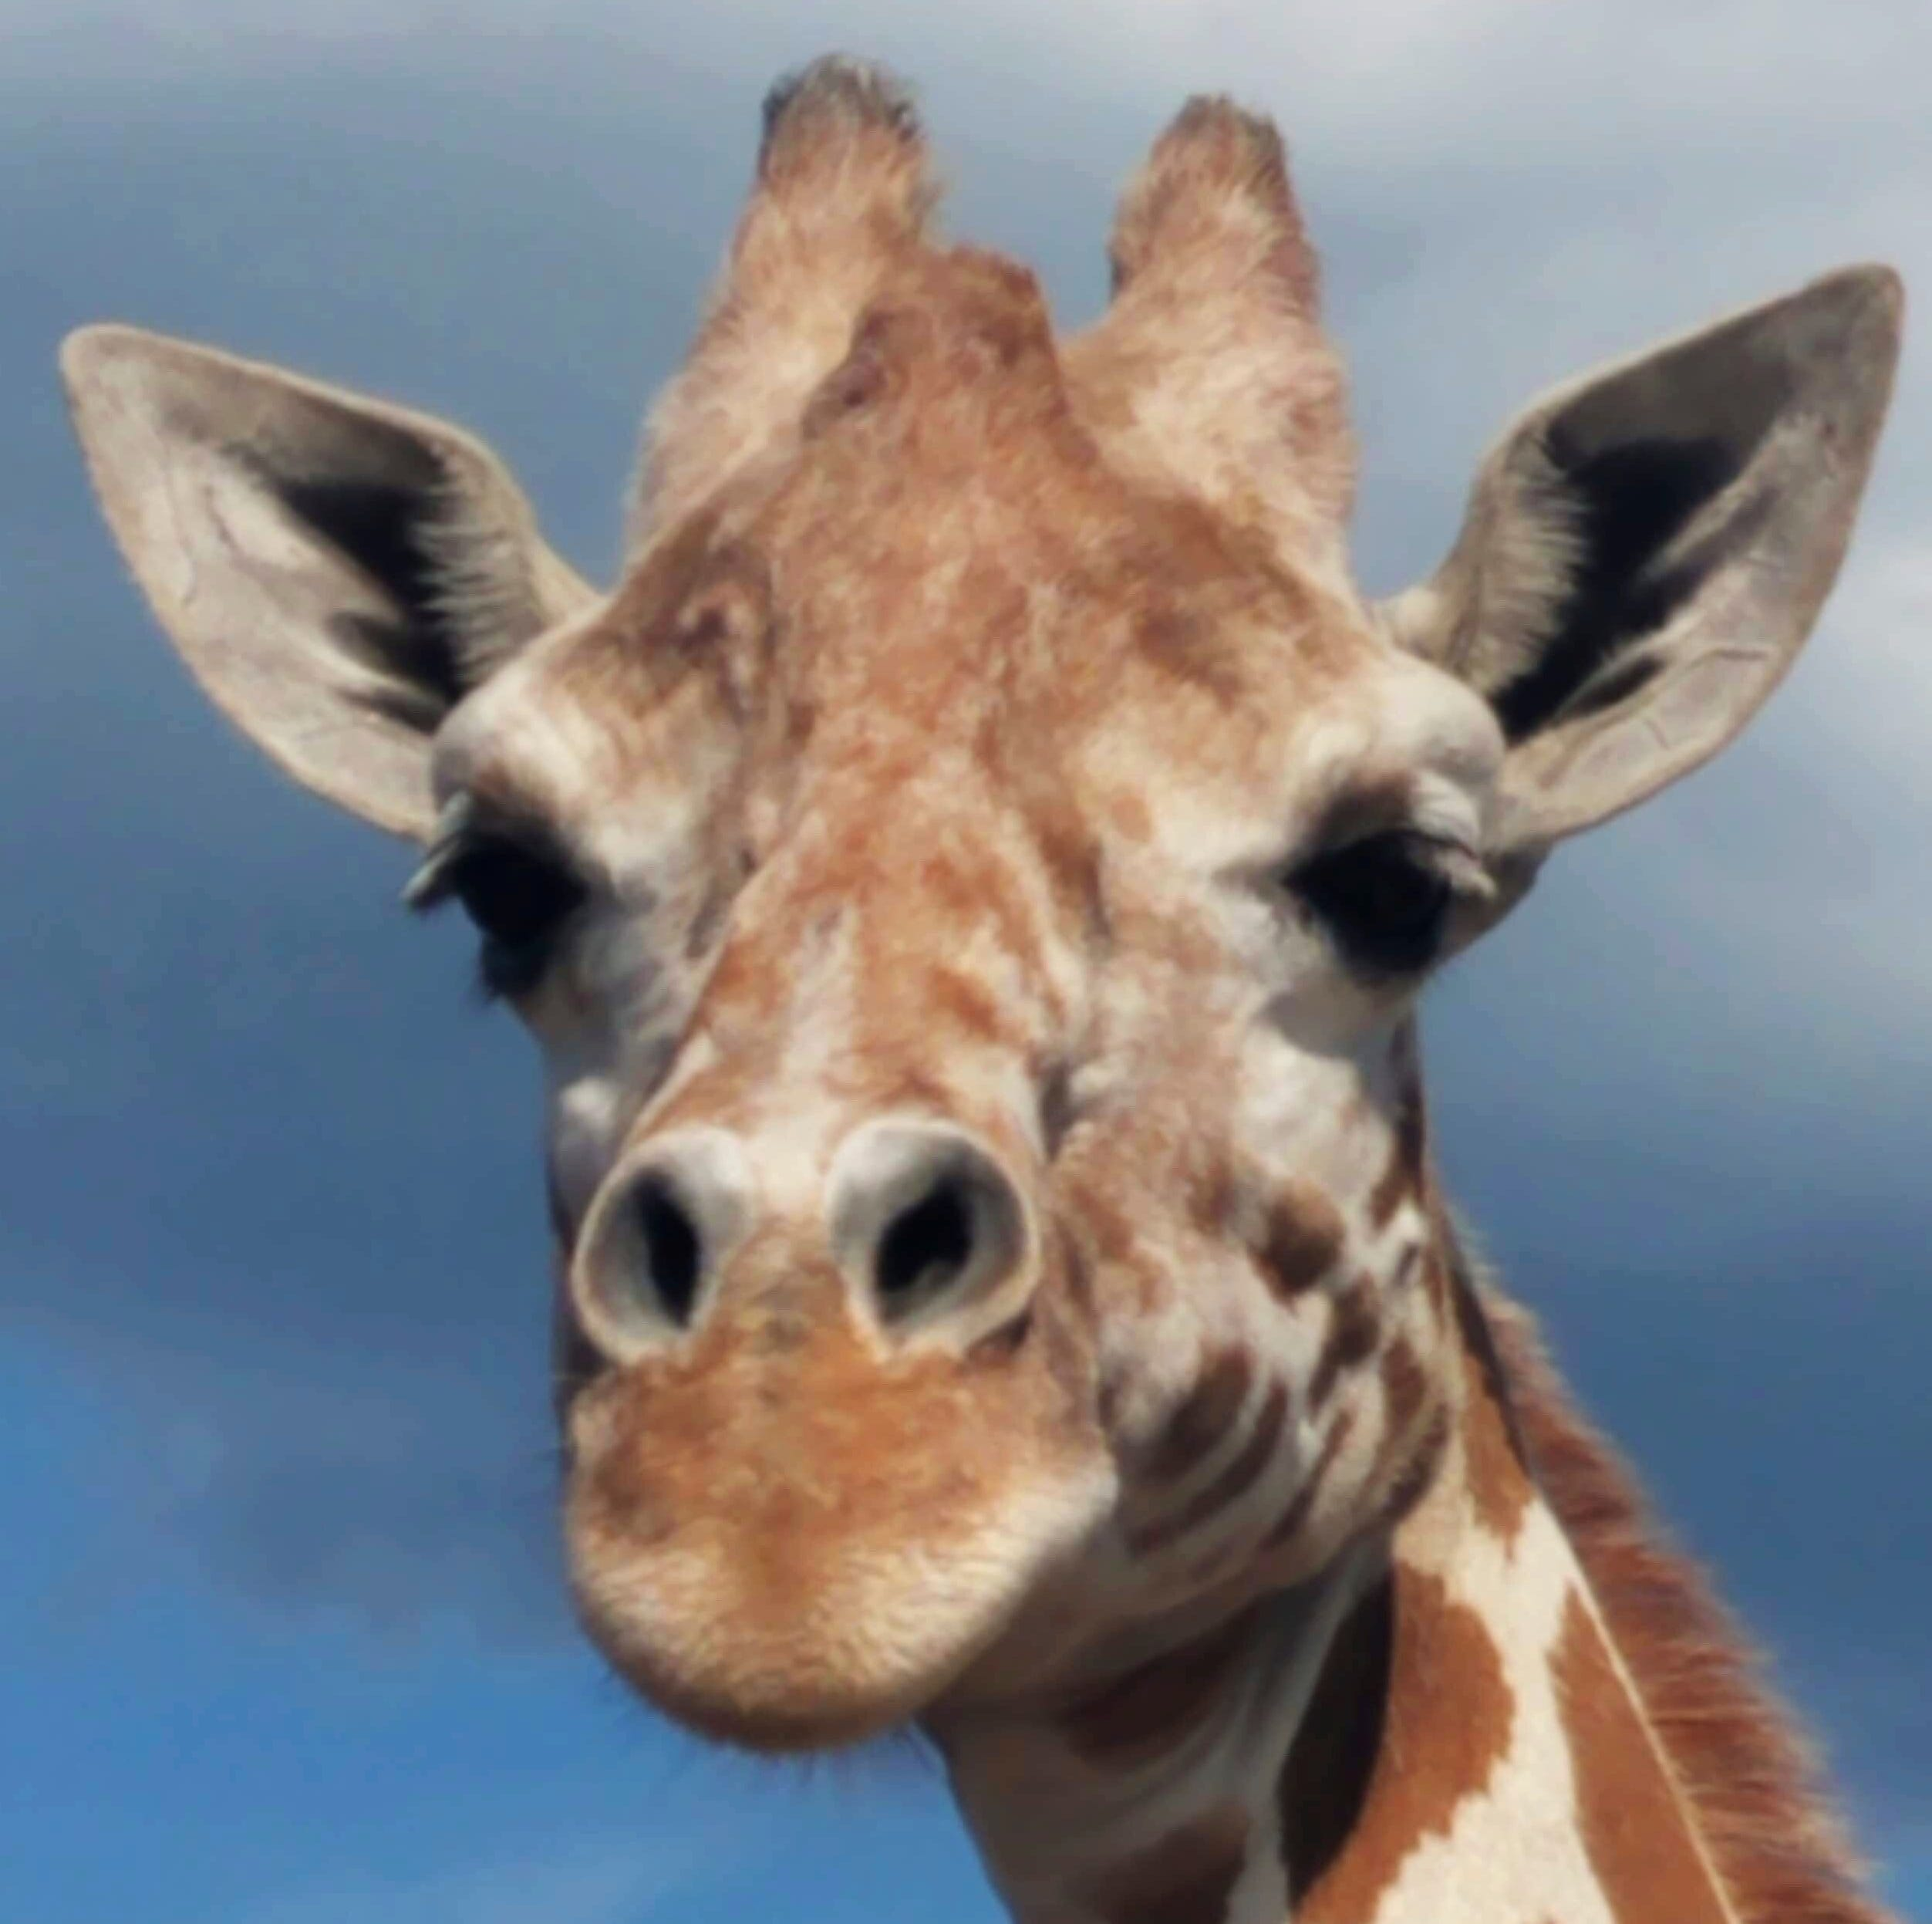 April the giraffe is getting ready to have a another calf any day now. She had a male calf, Tajiri, in April 2017.